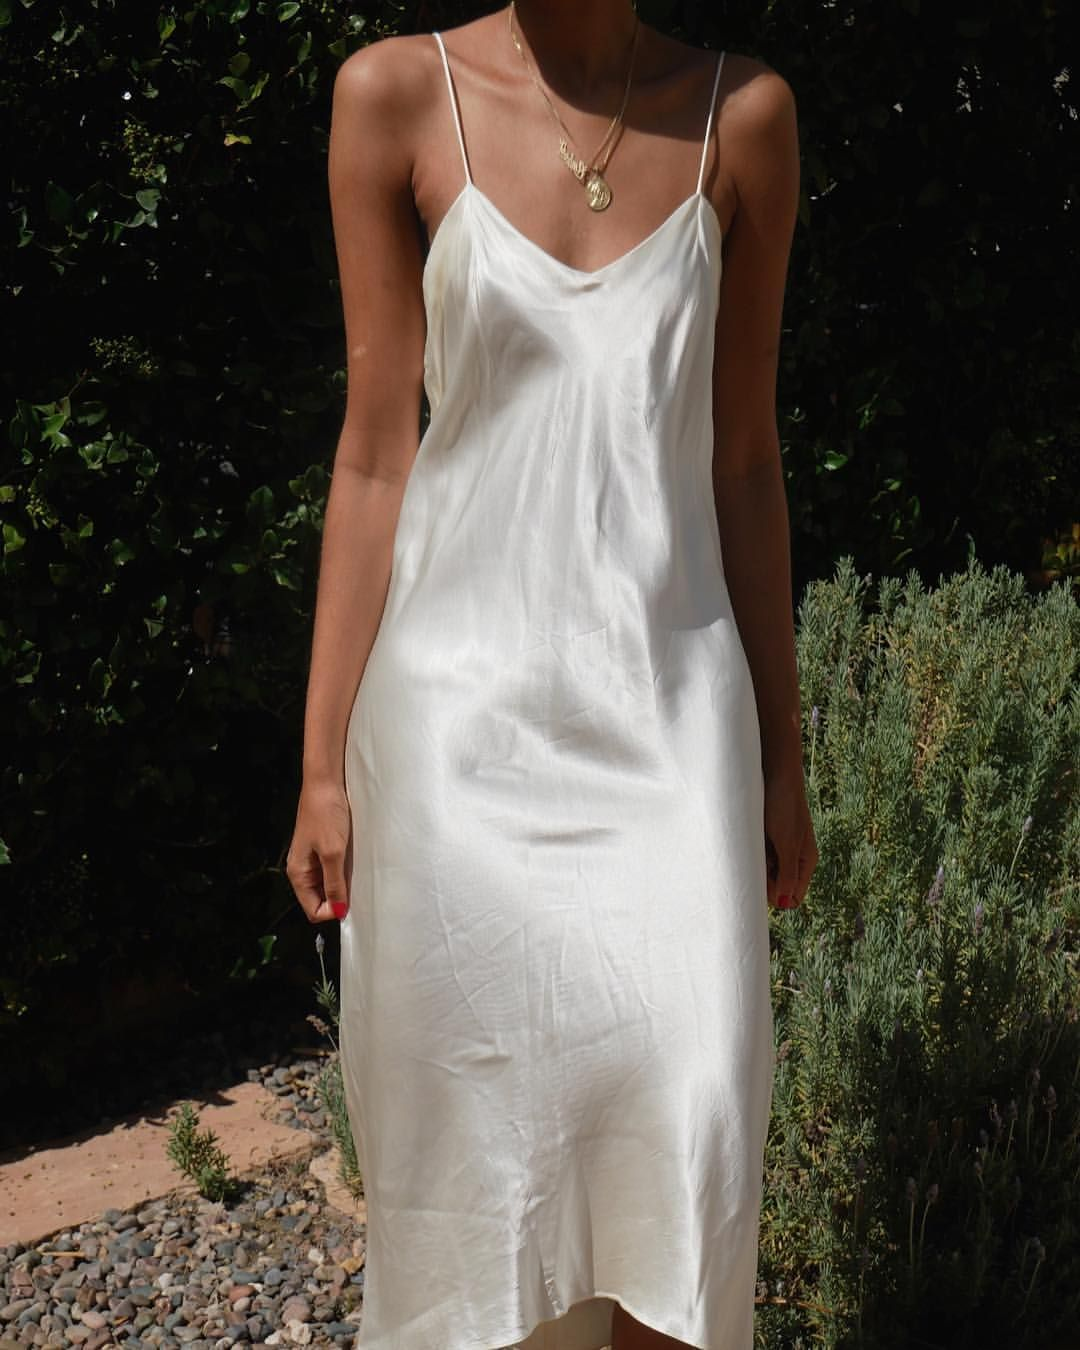 The Perfect Fall Layering Piece Paired With A Chunky Sweater Or Worn Alone Cream Silk Feel Slip Dress Size Medium Looks Grea White Slip Dress Fashion Style [ 1350 x 1080 Pixel ]